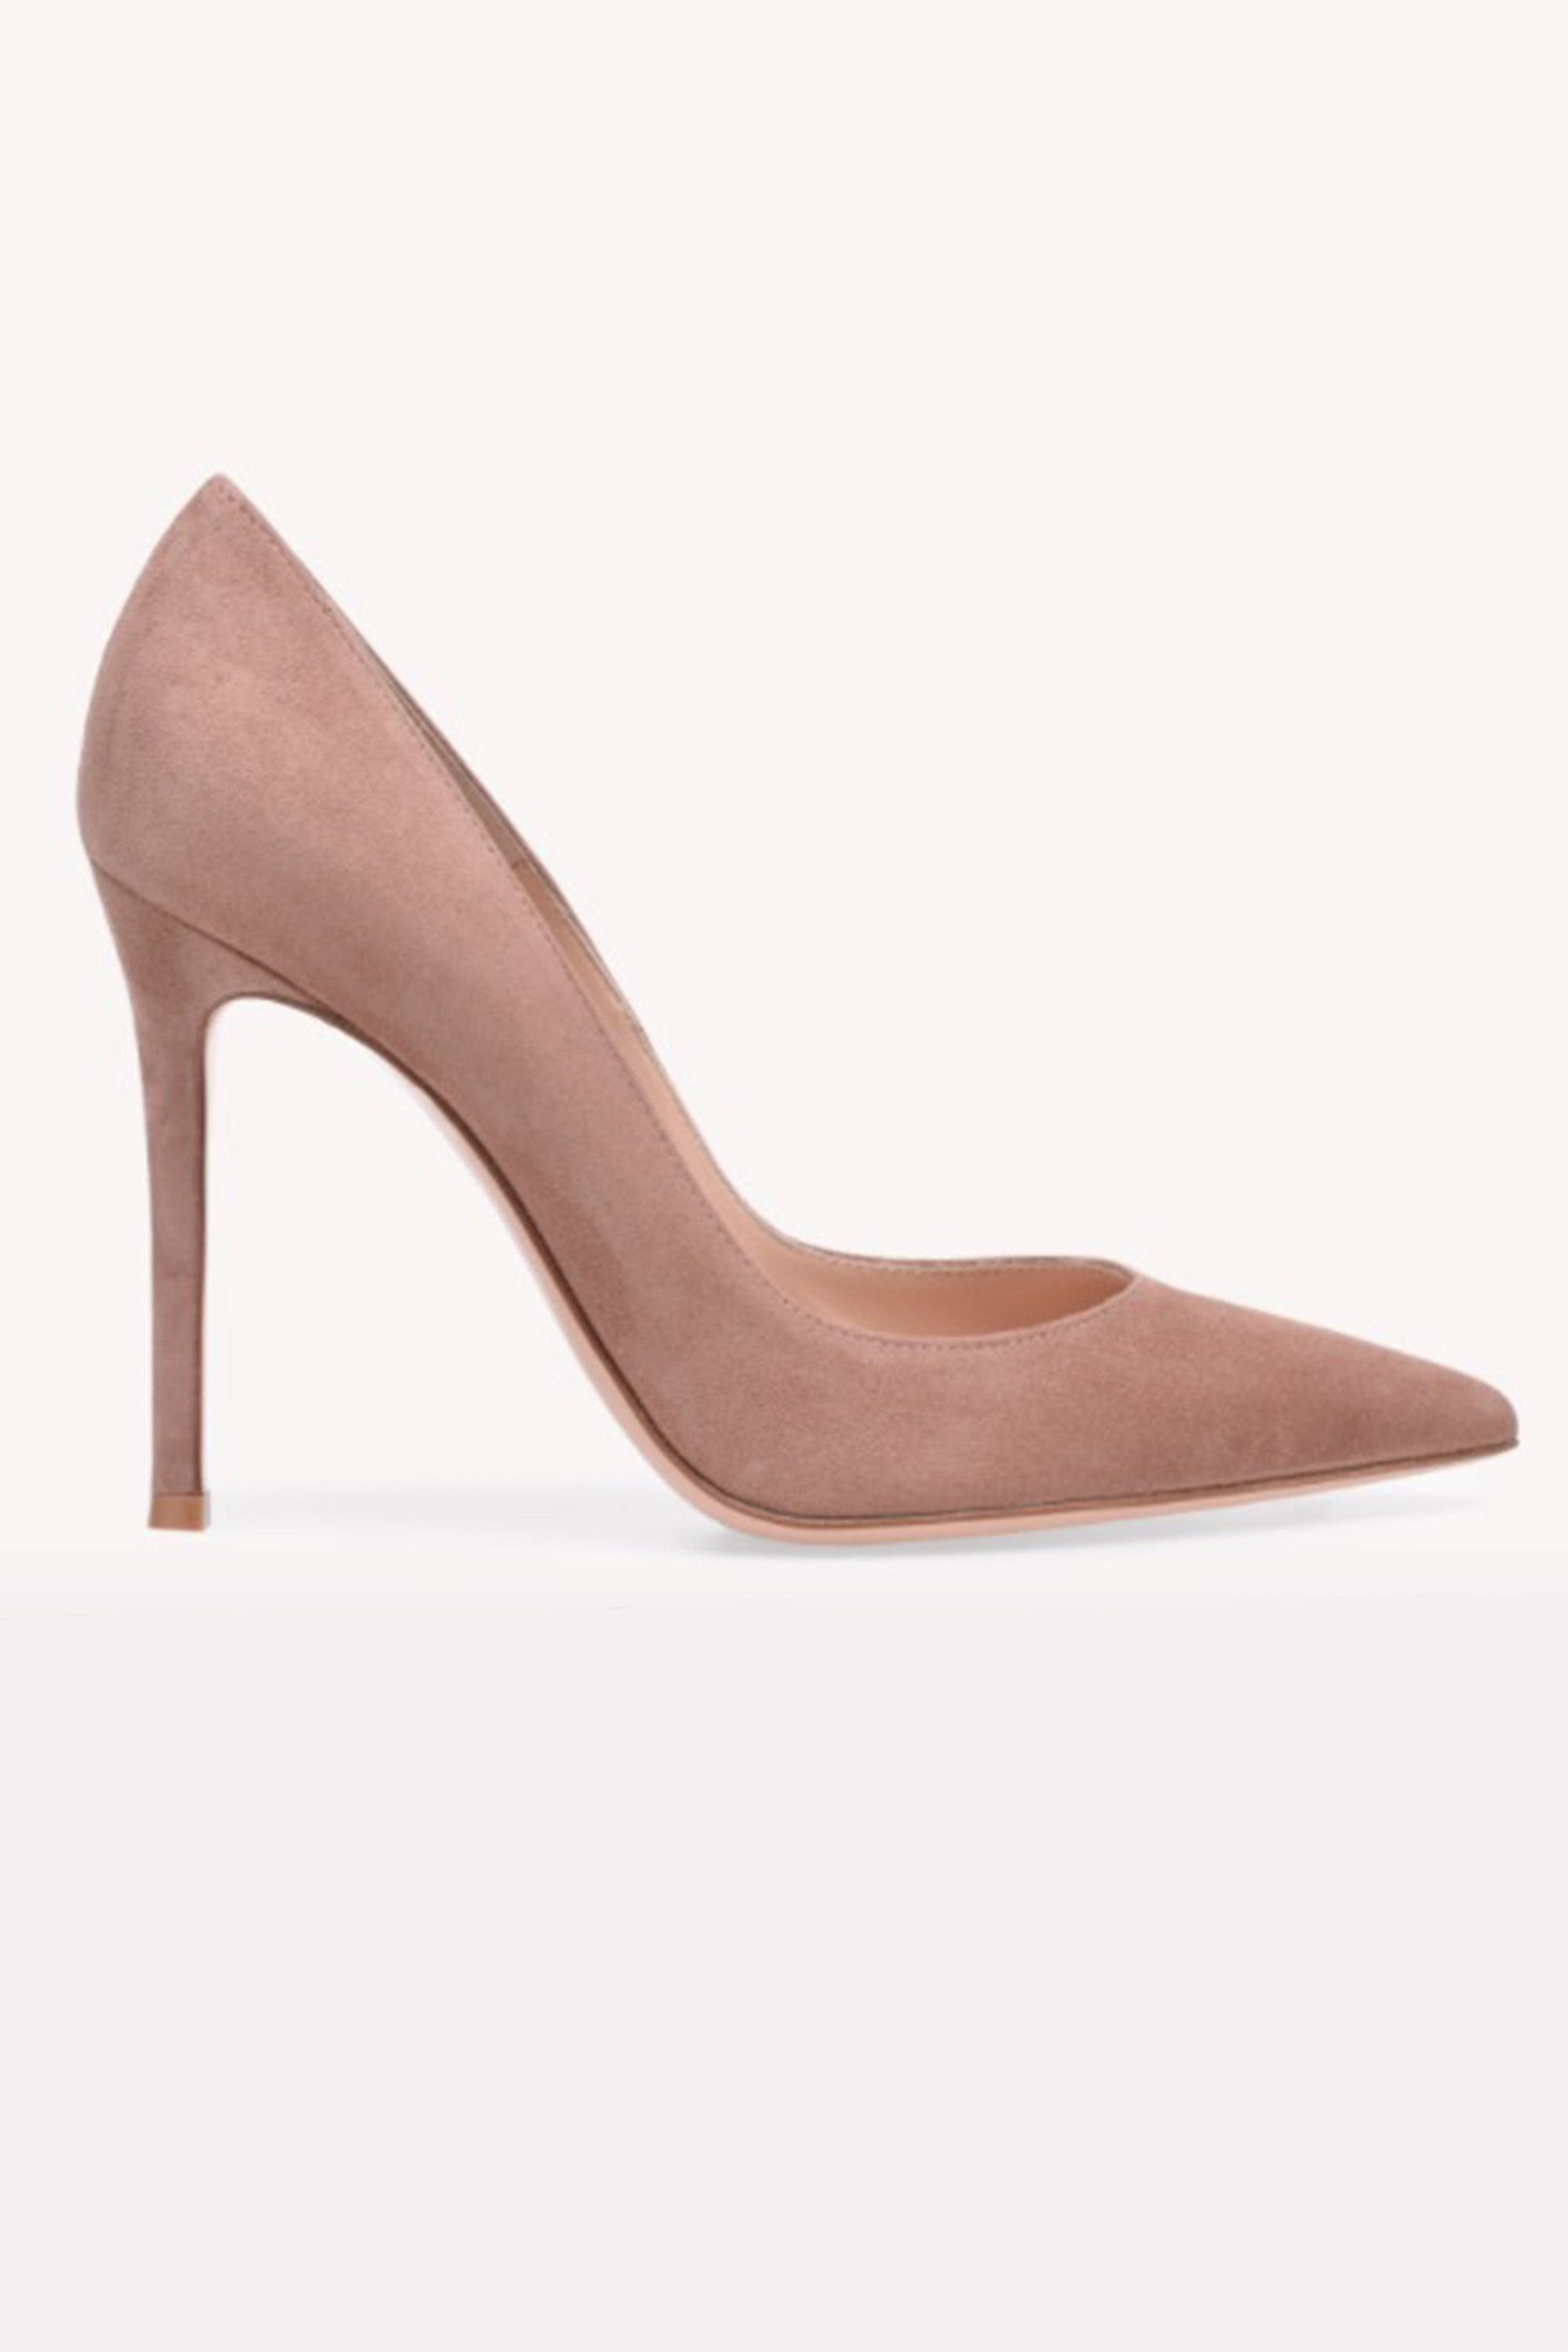 1f4ac3df2c Best nude court shoes inspired by Meghan Markle